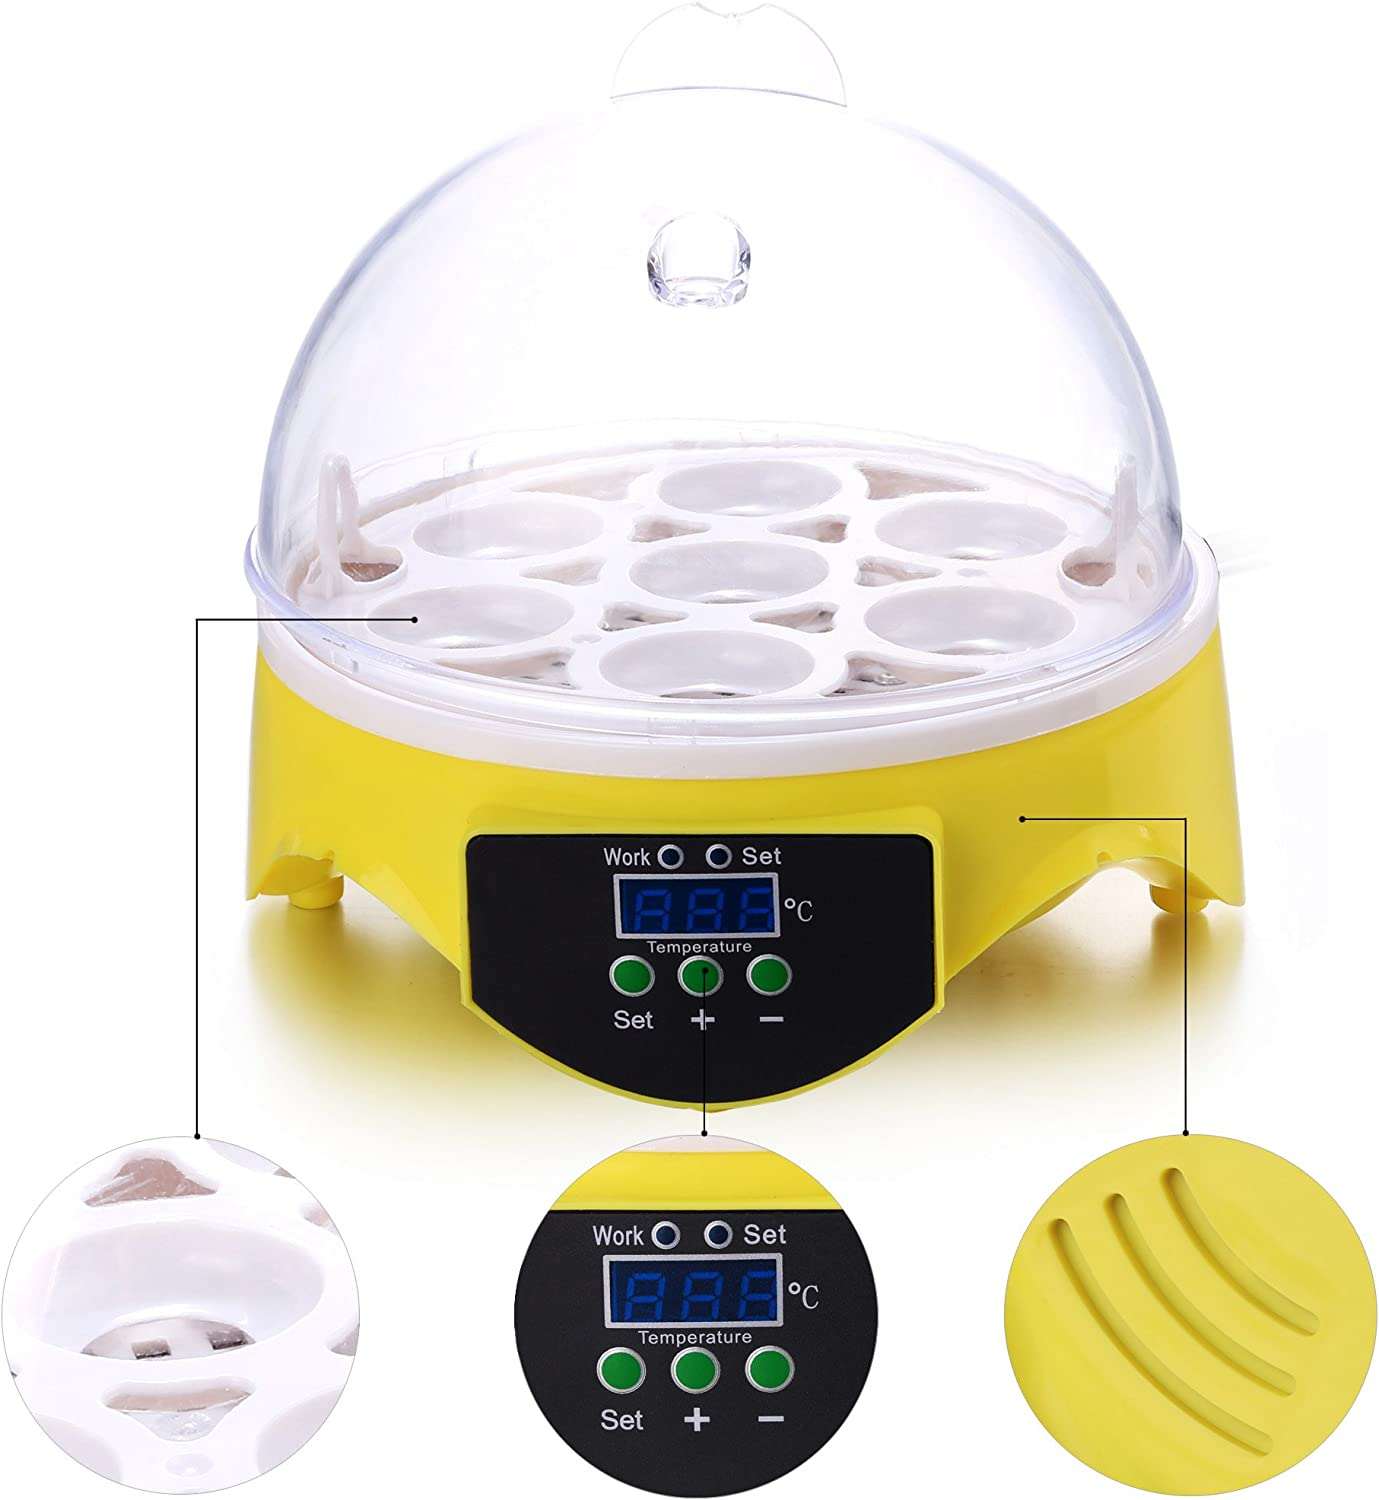 Moroly Egg Incubator auto Hatch Piece Component